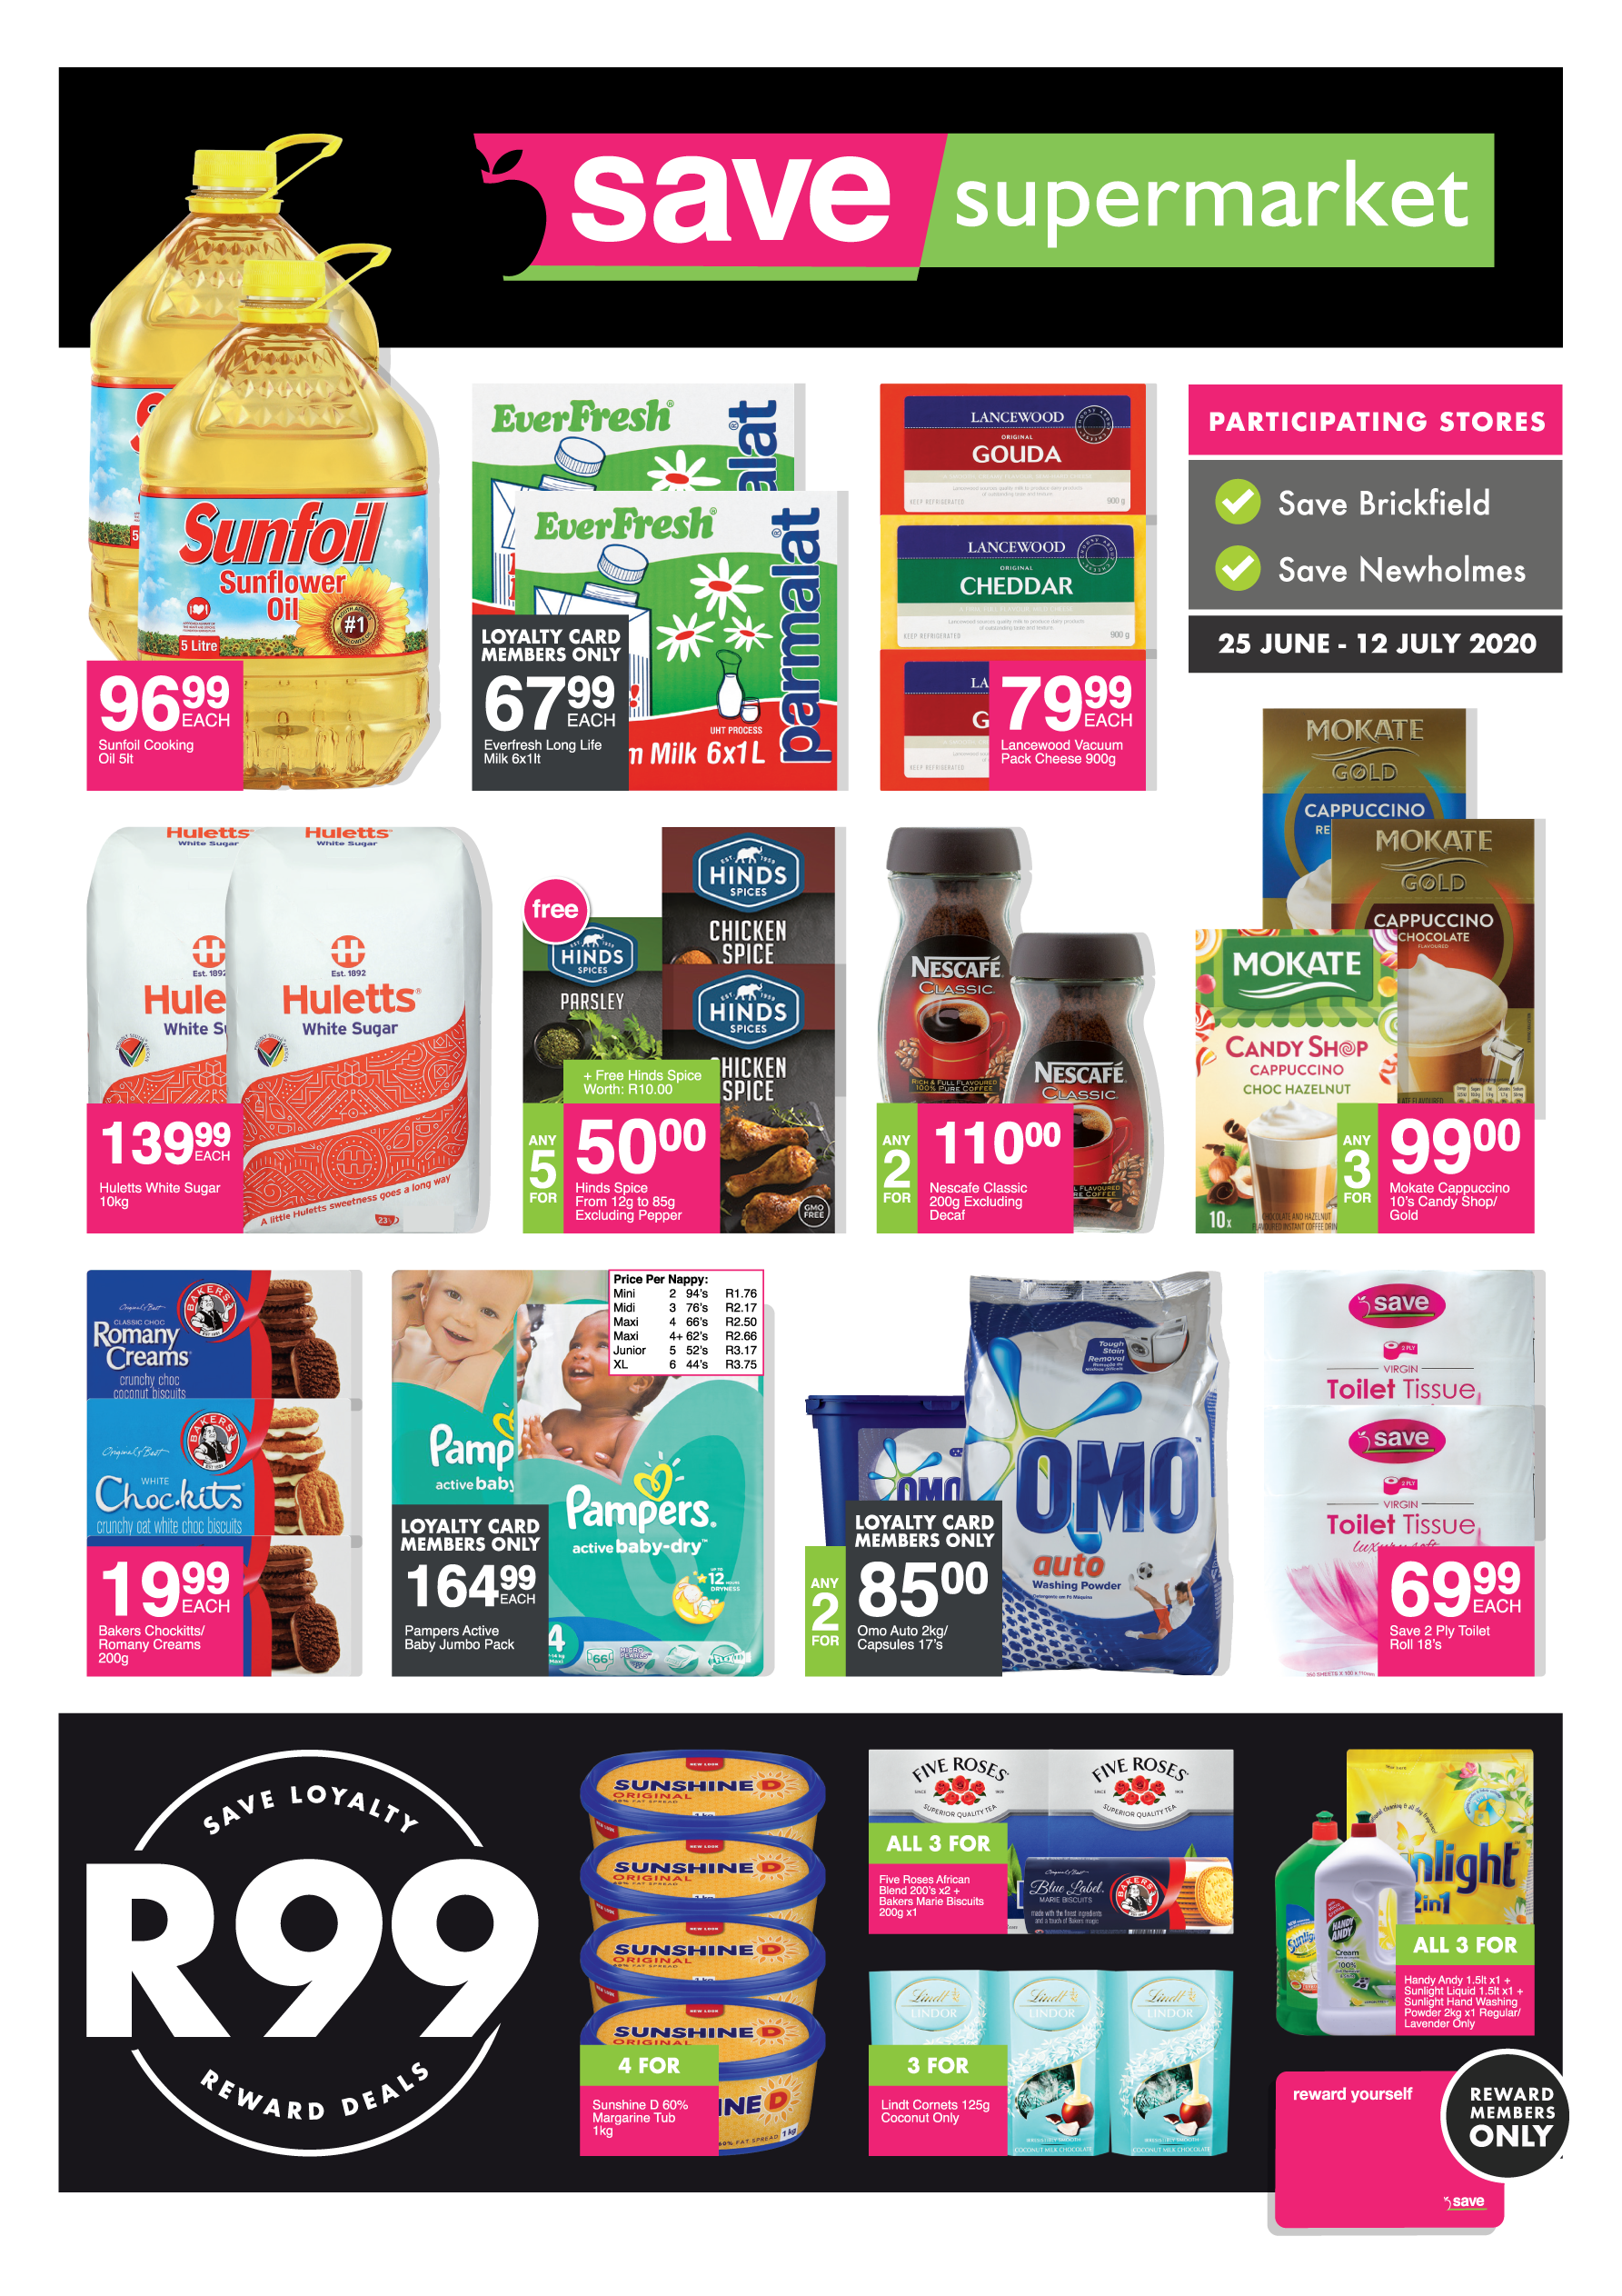 Supermarkets<br>Brickfield/Newholme Specials <br> - valid from 25 June<br>until 12 July 2020